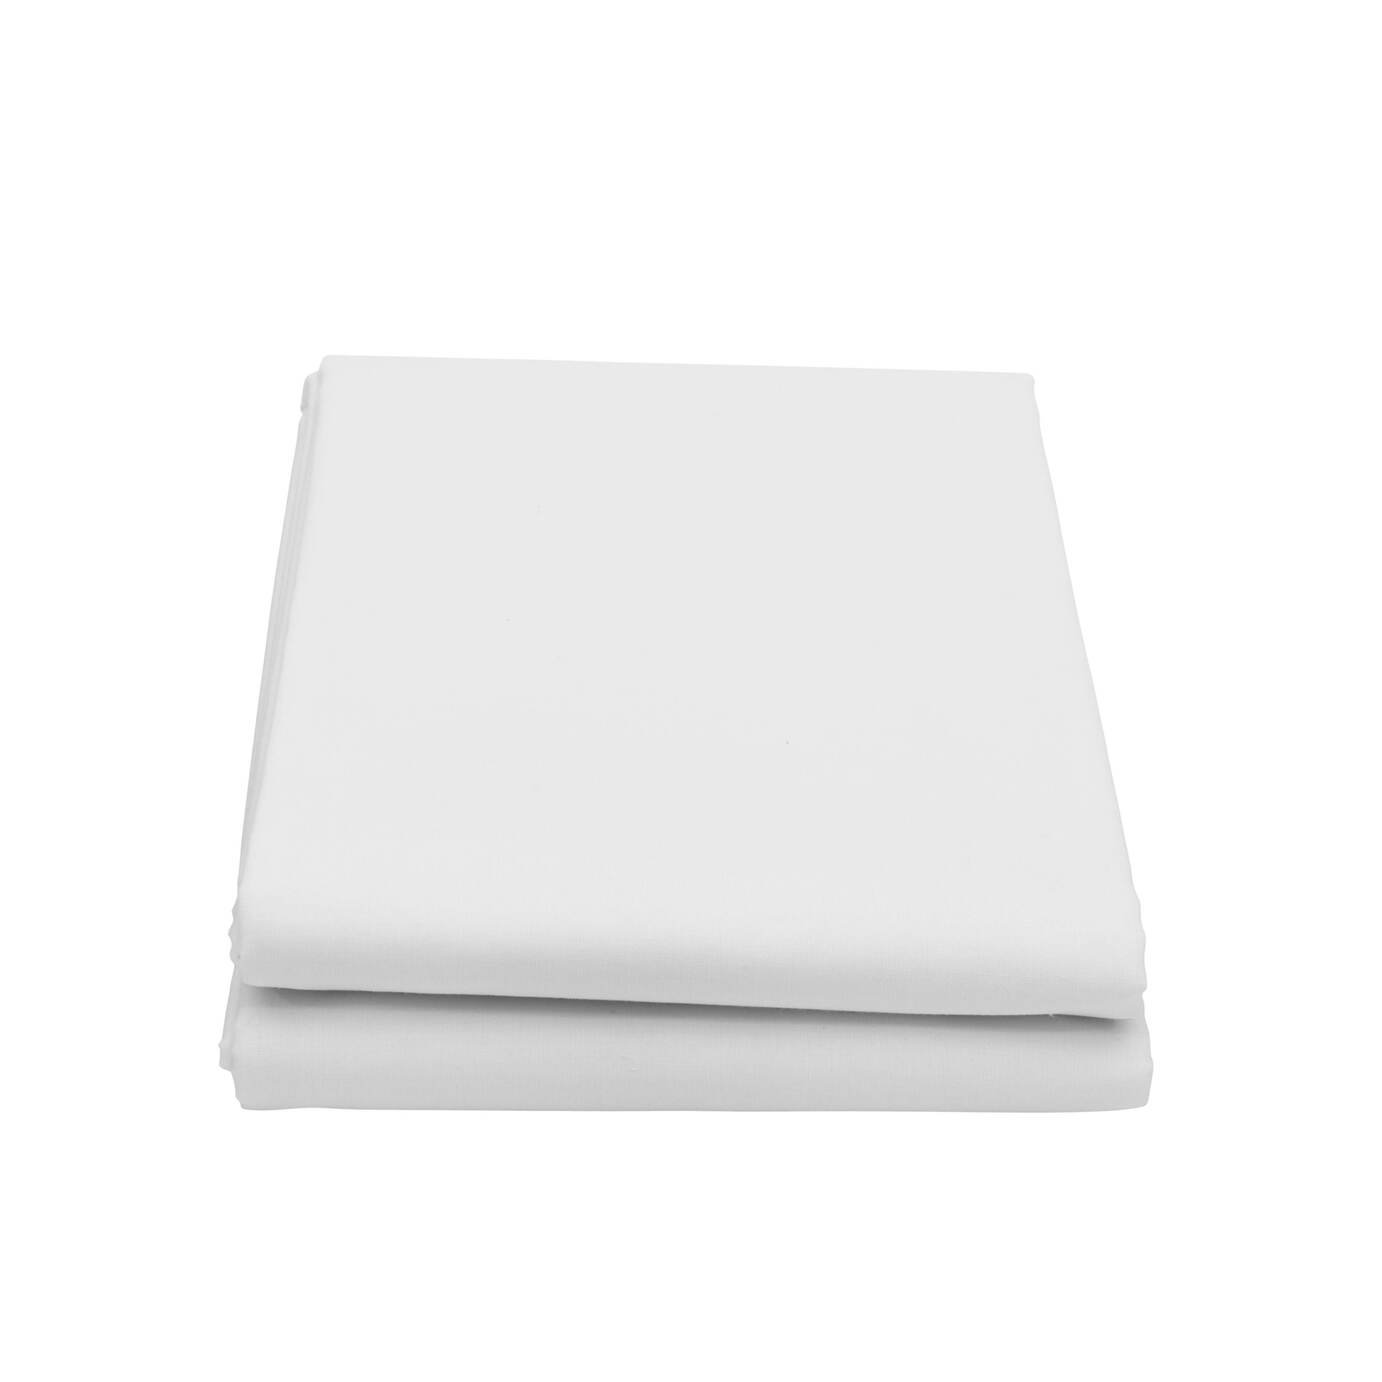 Yawn Air Bed Fitted Sheet